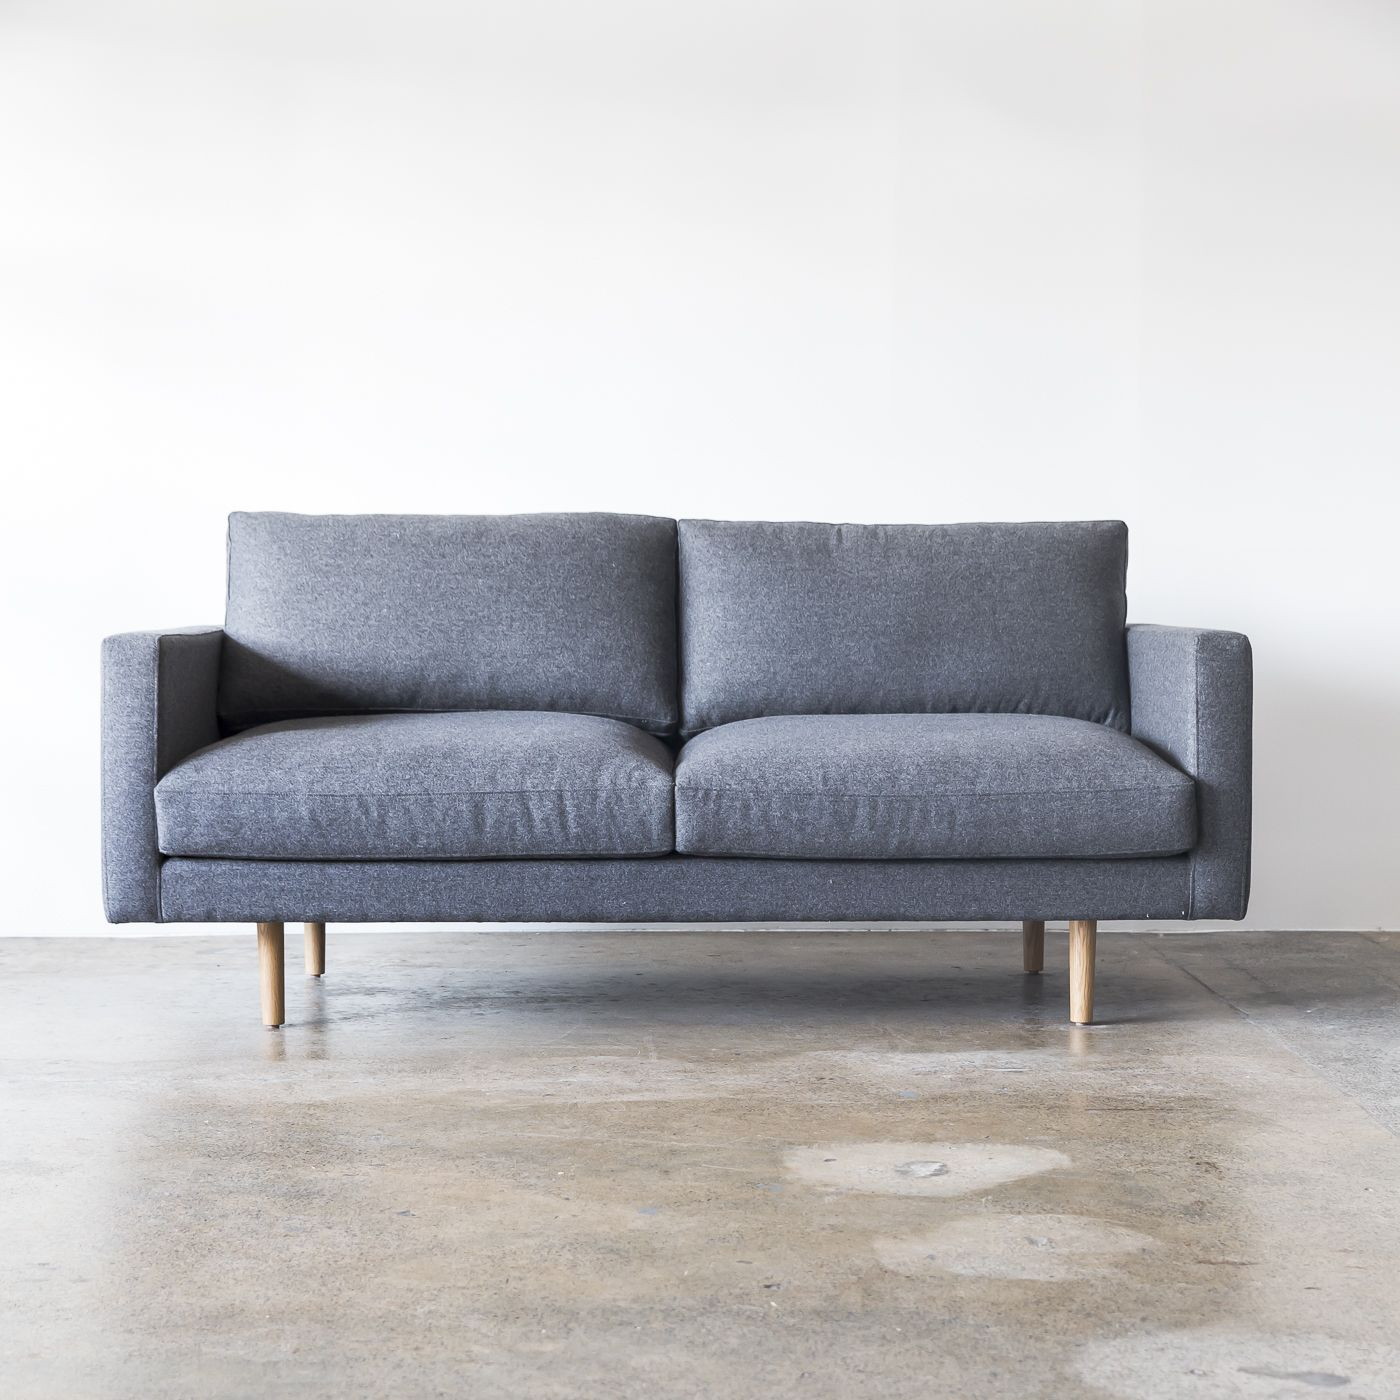 Australian Made Sofas The Charlie Sofa From Our Staple Co Collection Made To Order In